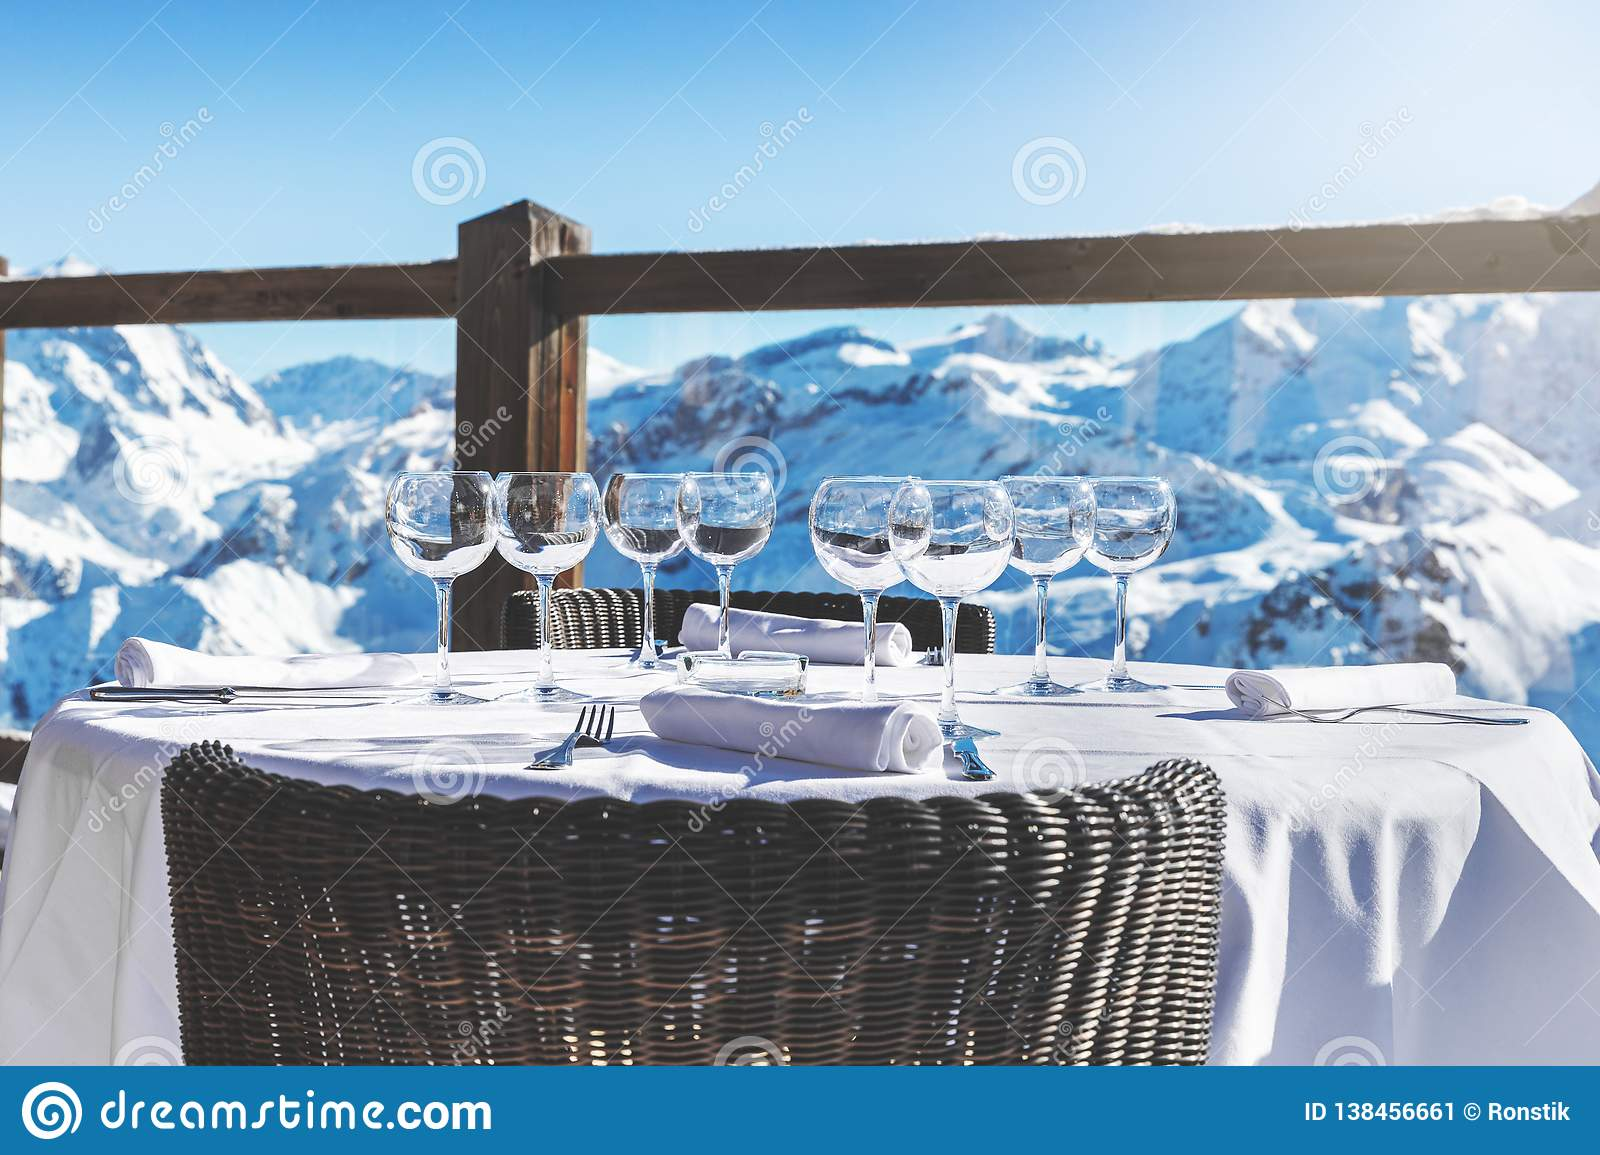 Outdoor Luxury Restaurant Table With Beautiful Mountain Landscape View Stock Image Image Of Scenic High 138456661